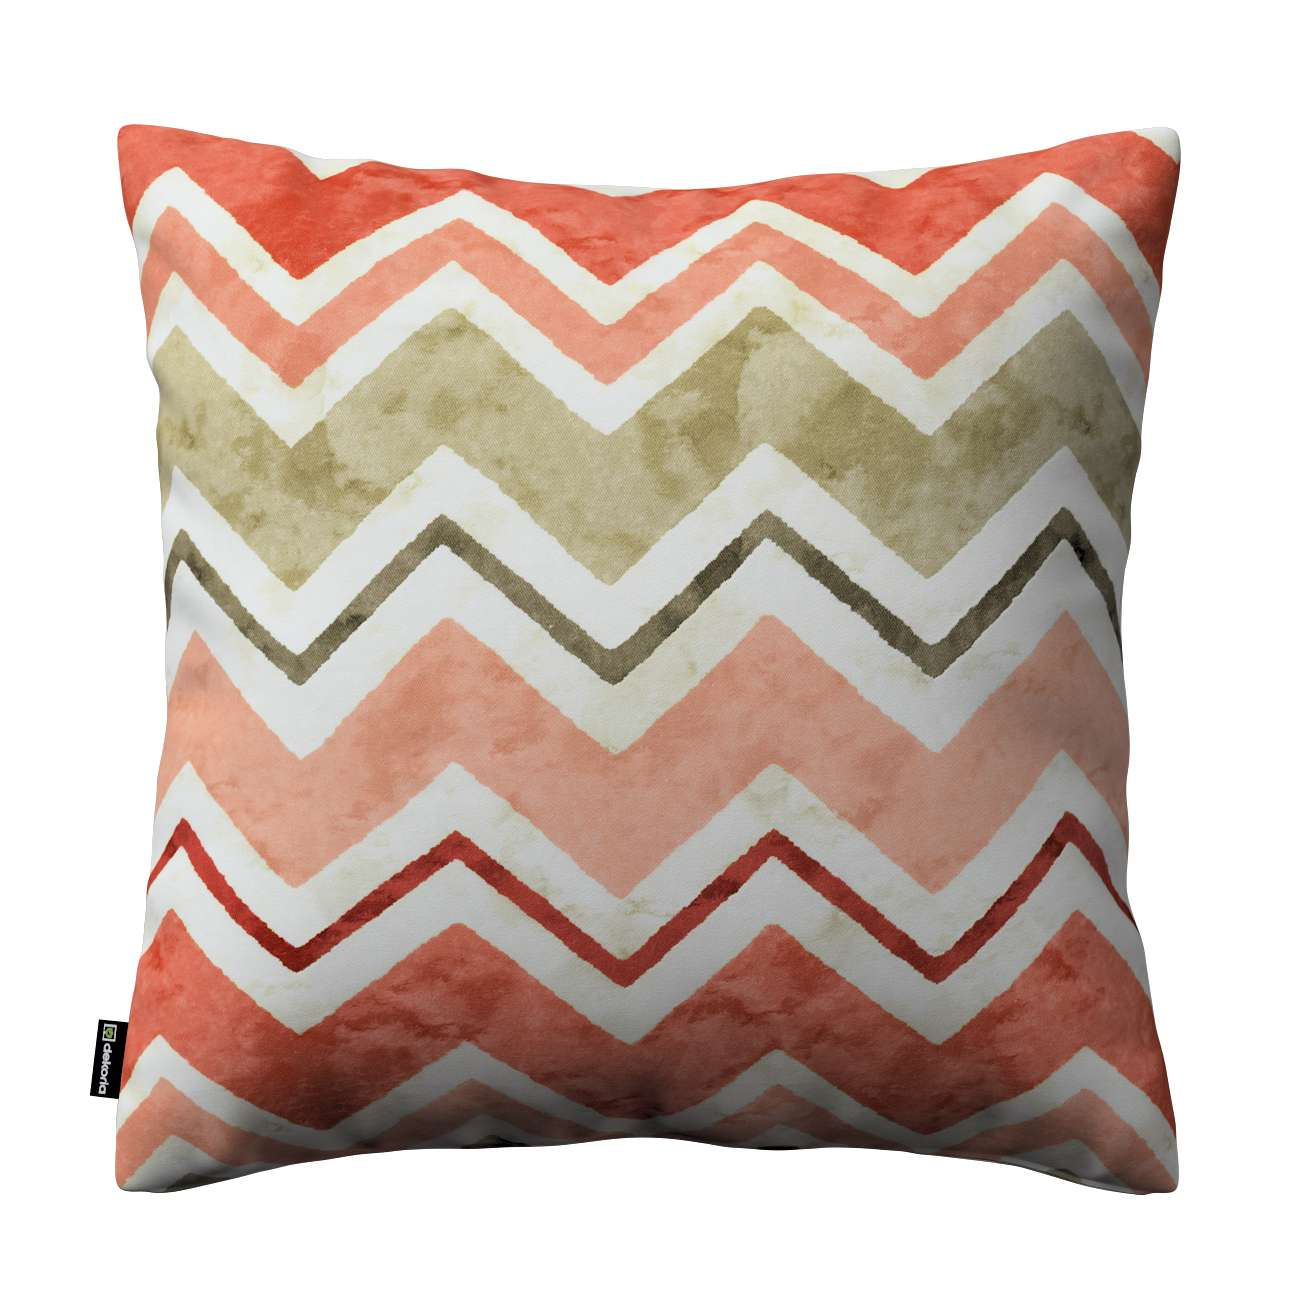 Kinga cushion cover in collection Acapulco, fabric: 141-40